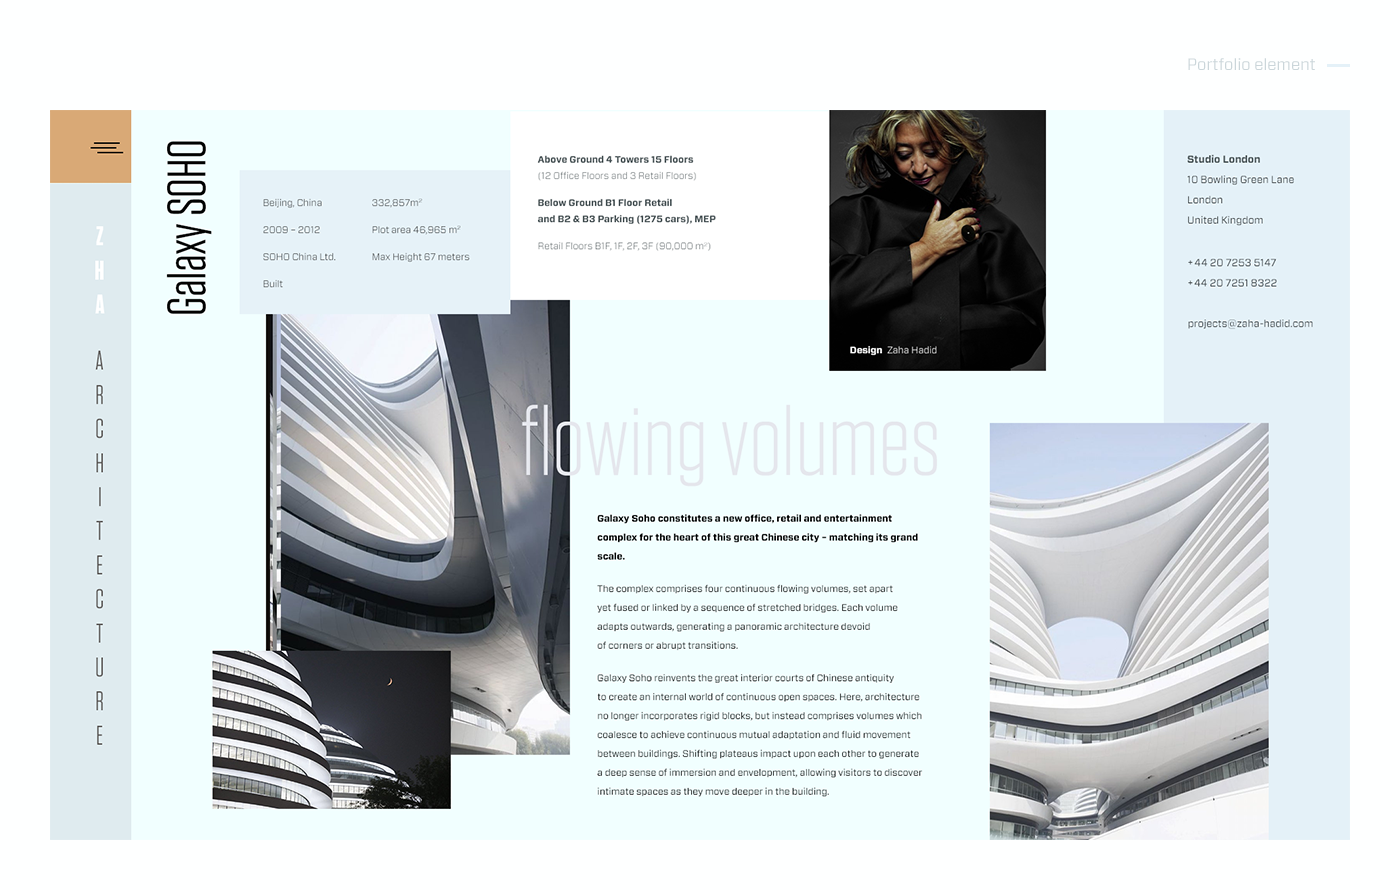 Zaha Hadid Architects Portfolio Element